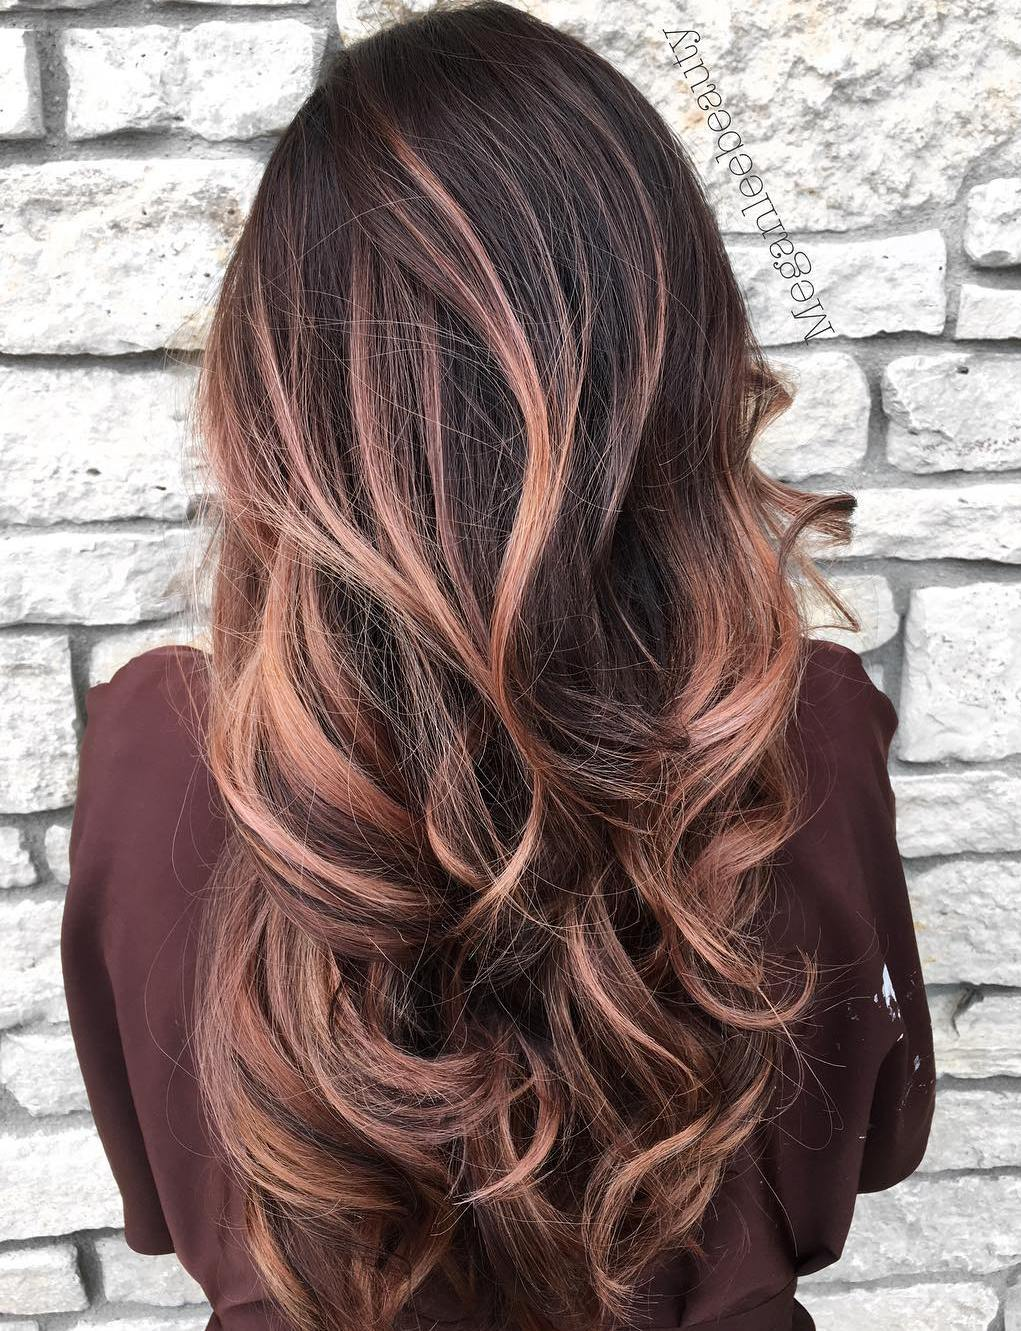 Long Dark Hair with Pastel Pink & Rose Gold Balayage Highlights